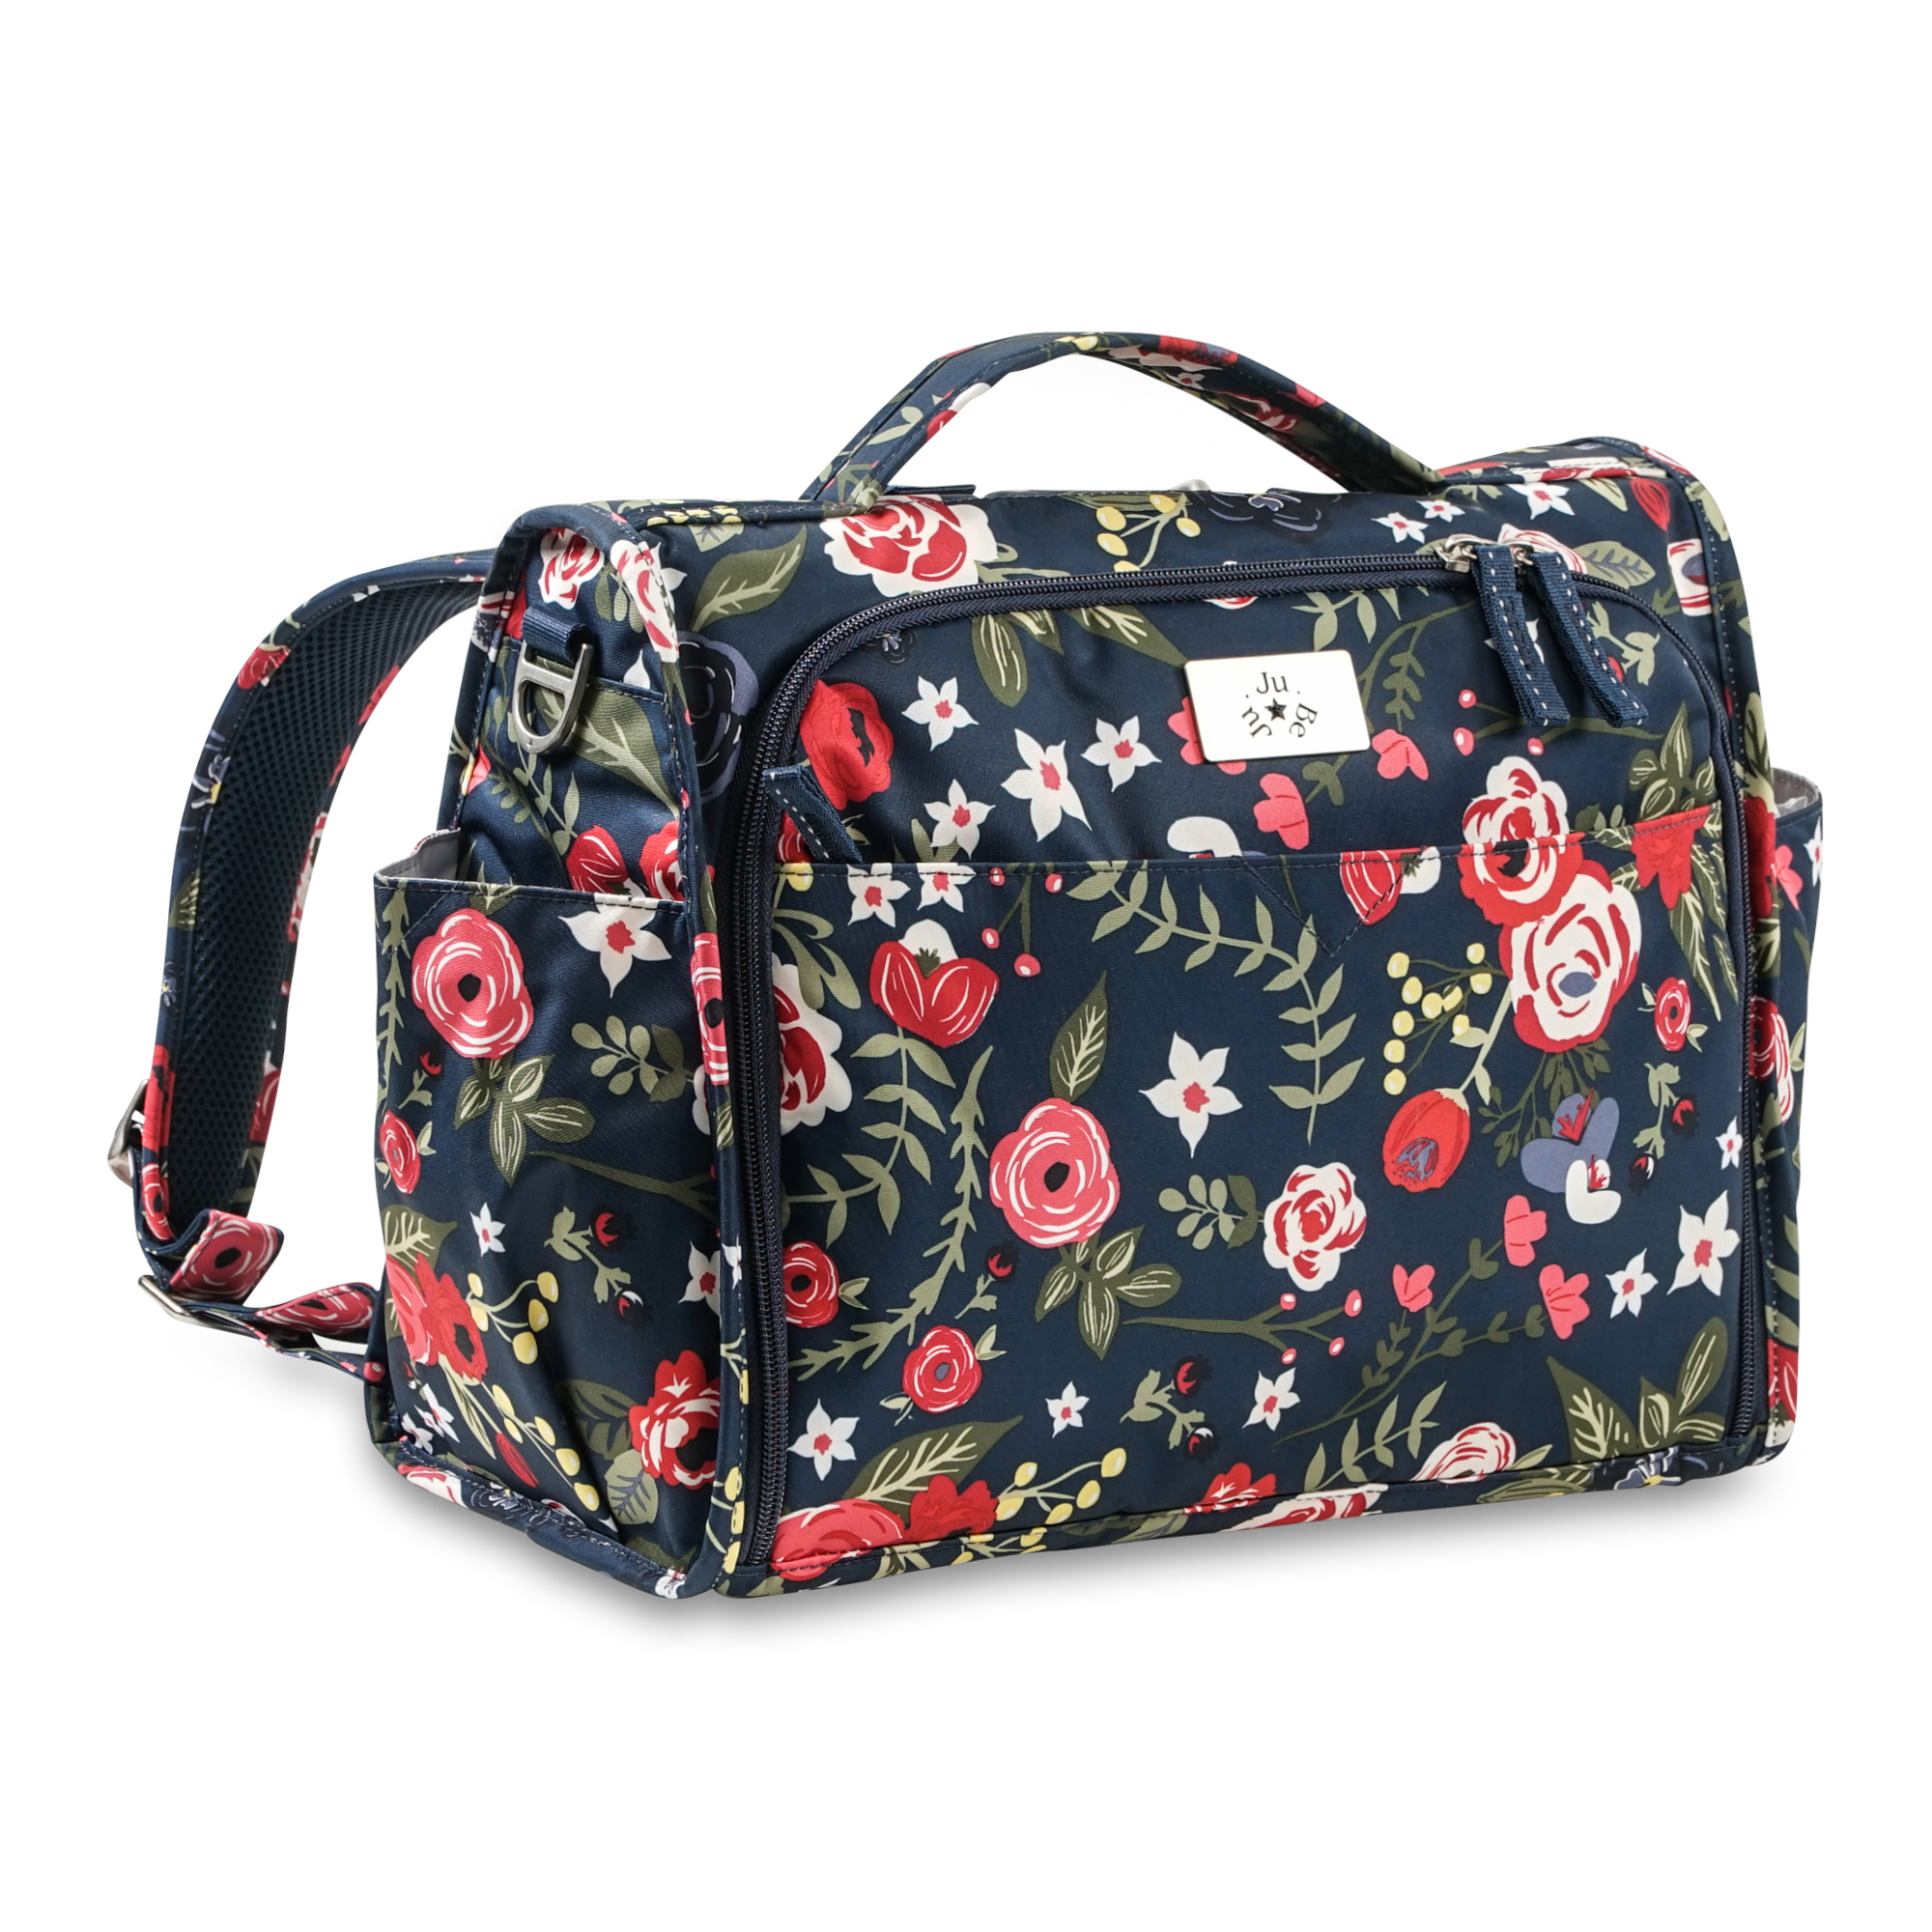 ju-ju-be-midnight-posy-classic-convertible-diaper-bag-2